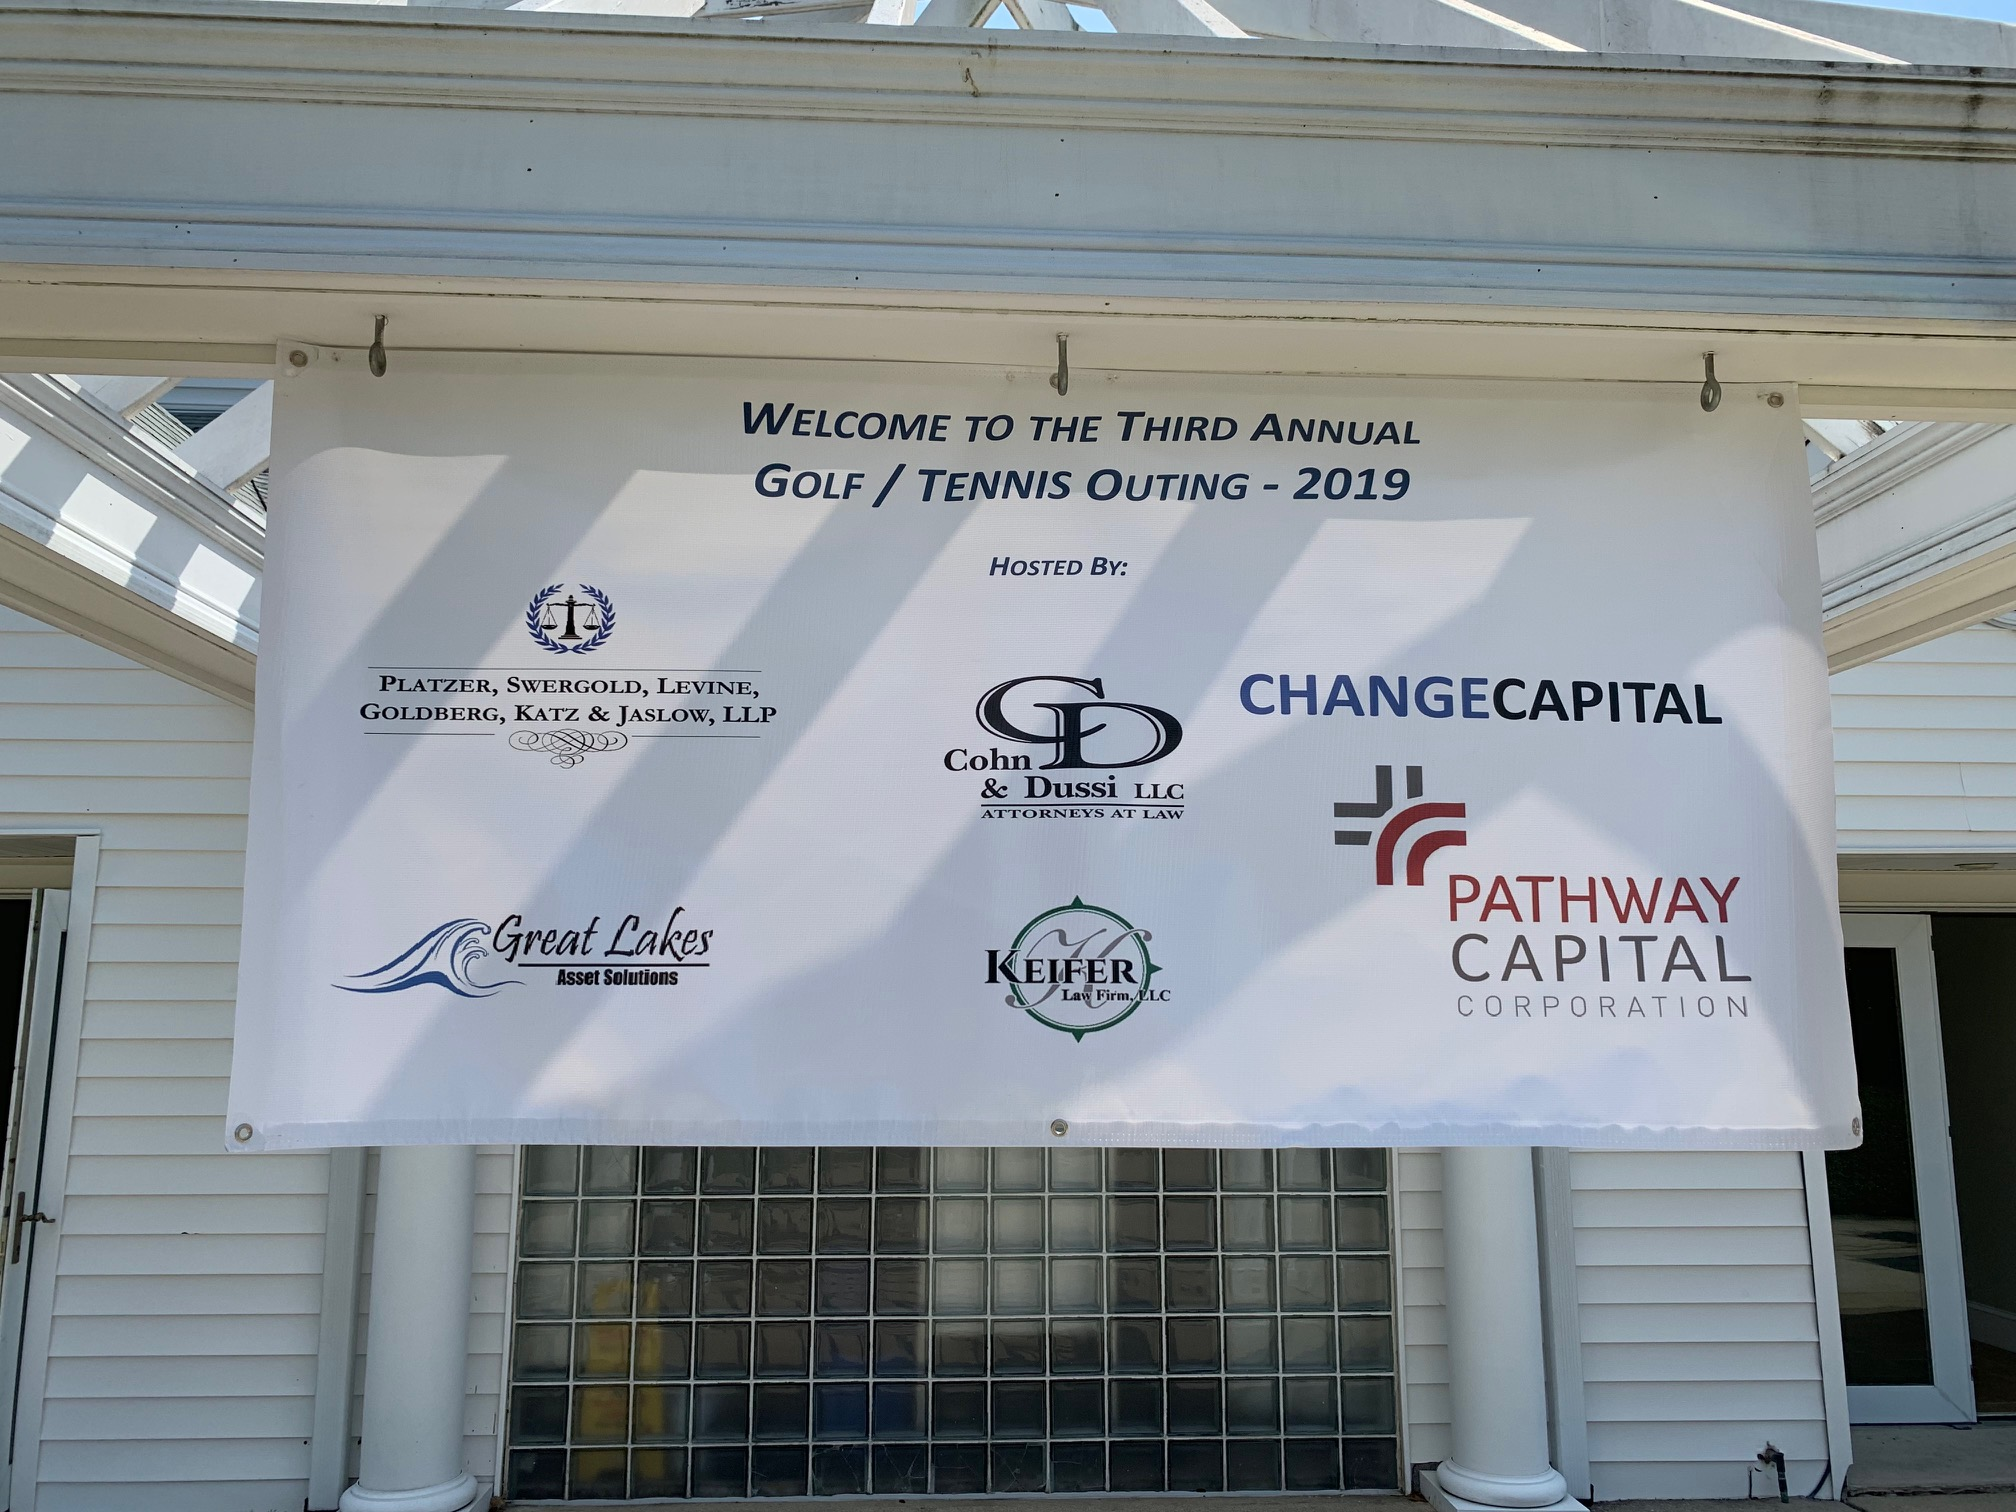 Welcome to the Third Annual Golf/Tennis Outing - 2019